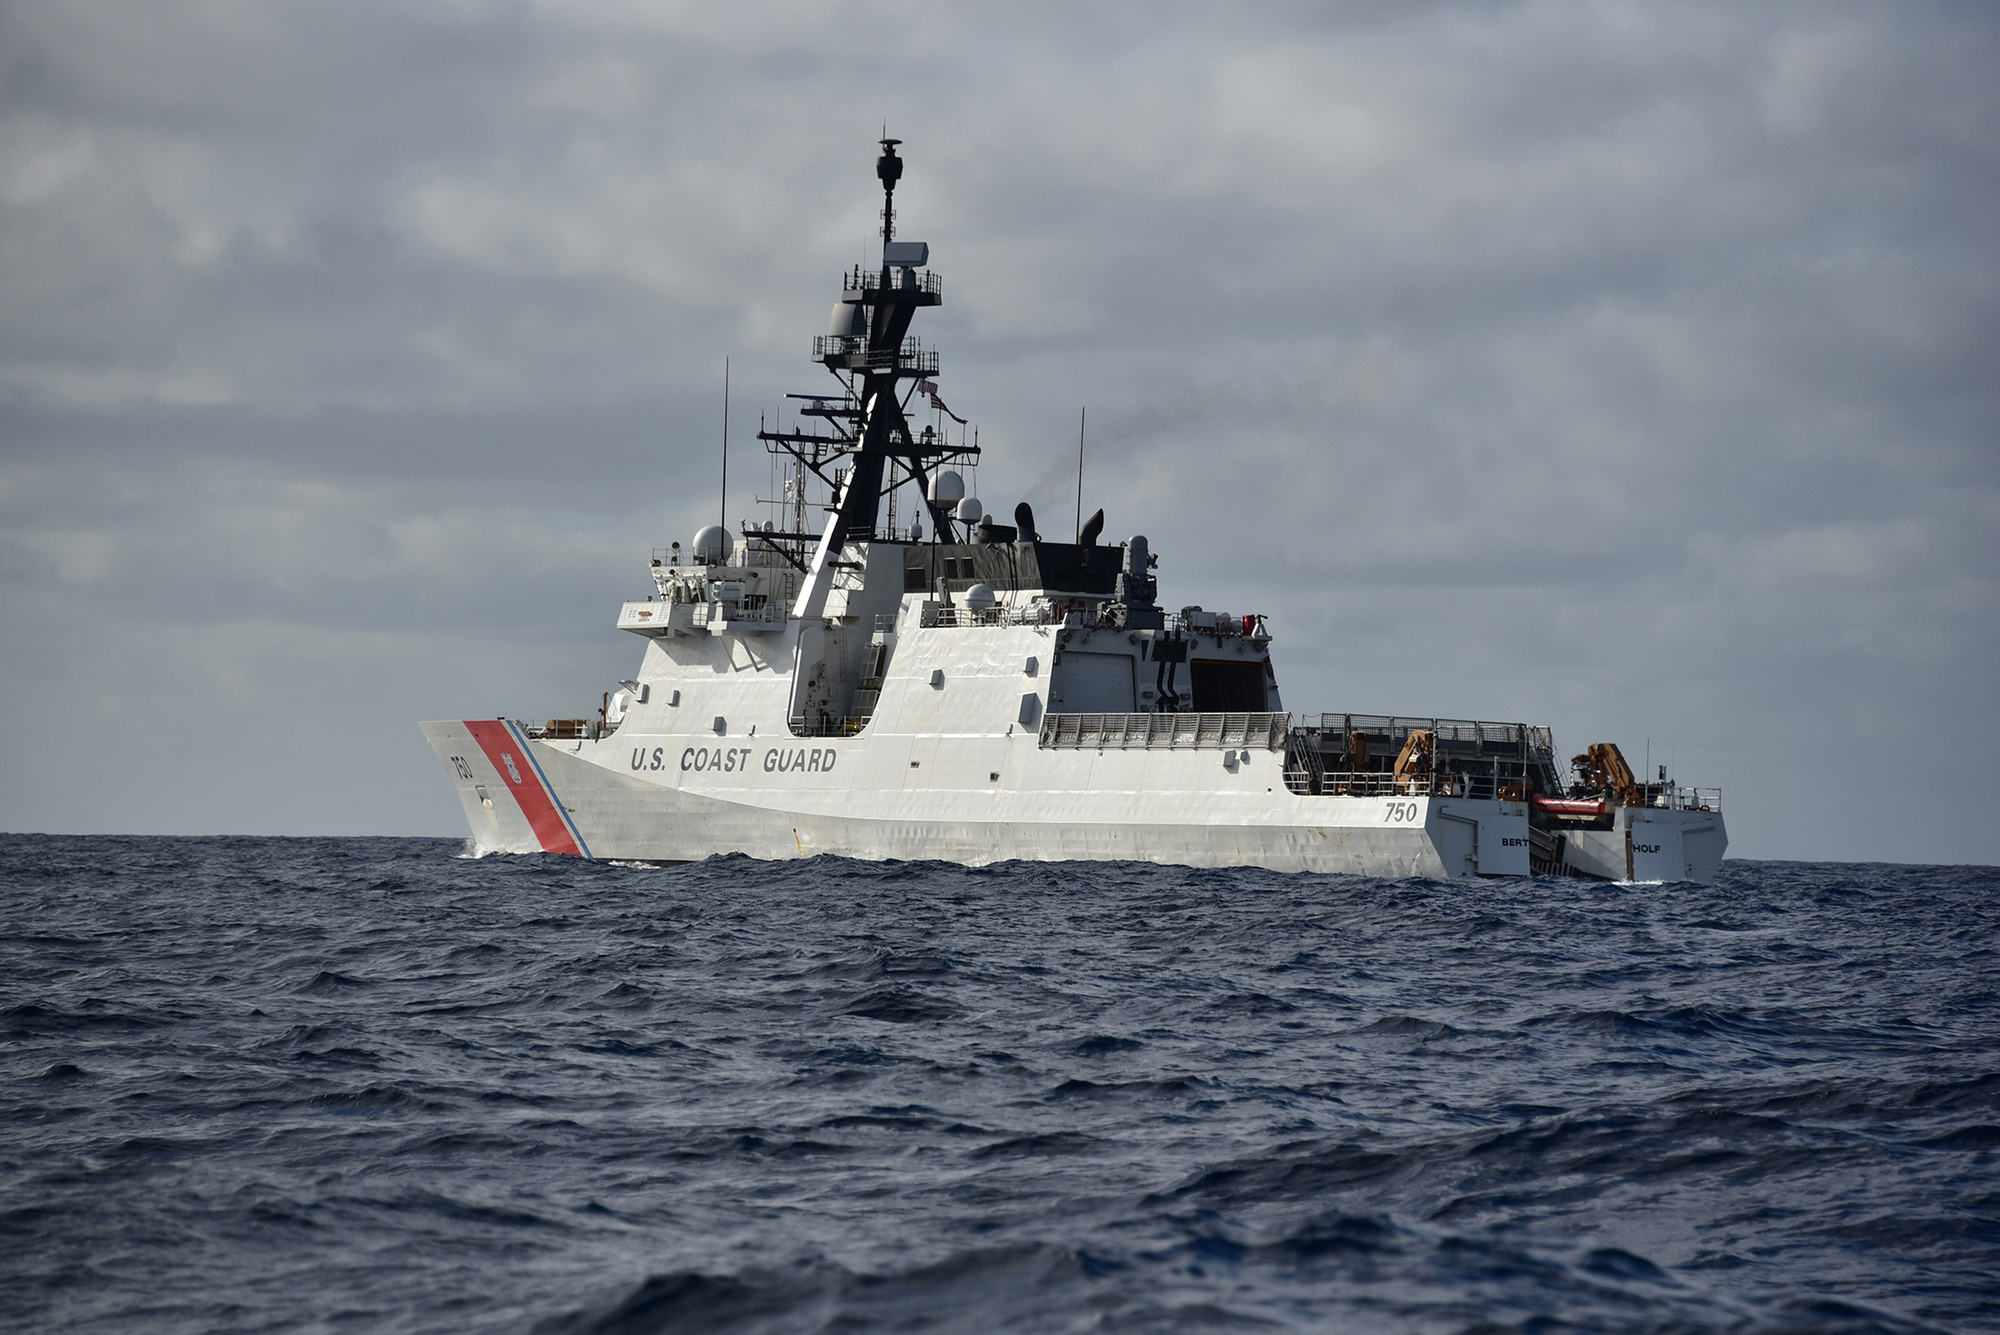 The crew of the U.S. Coast Guard Cutter Bertholf (WMSL 750) is on patrol of the Western Pacific Ocean Jan. 22, 2019.  The crew aims to improve regional governance and security and enhance partner nations' maritime capabilities. U.S. Coast Guard photo by Chief Petty Officer John Masson